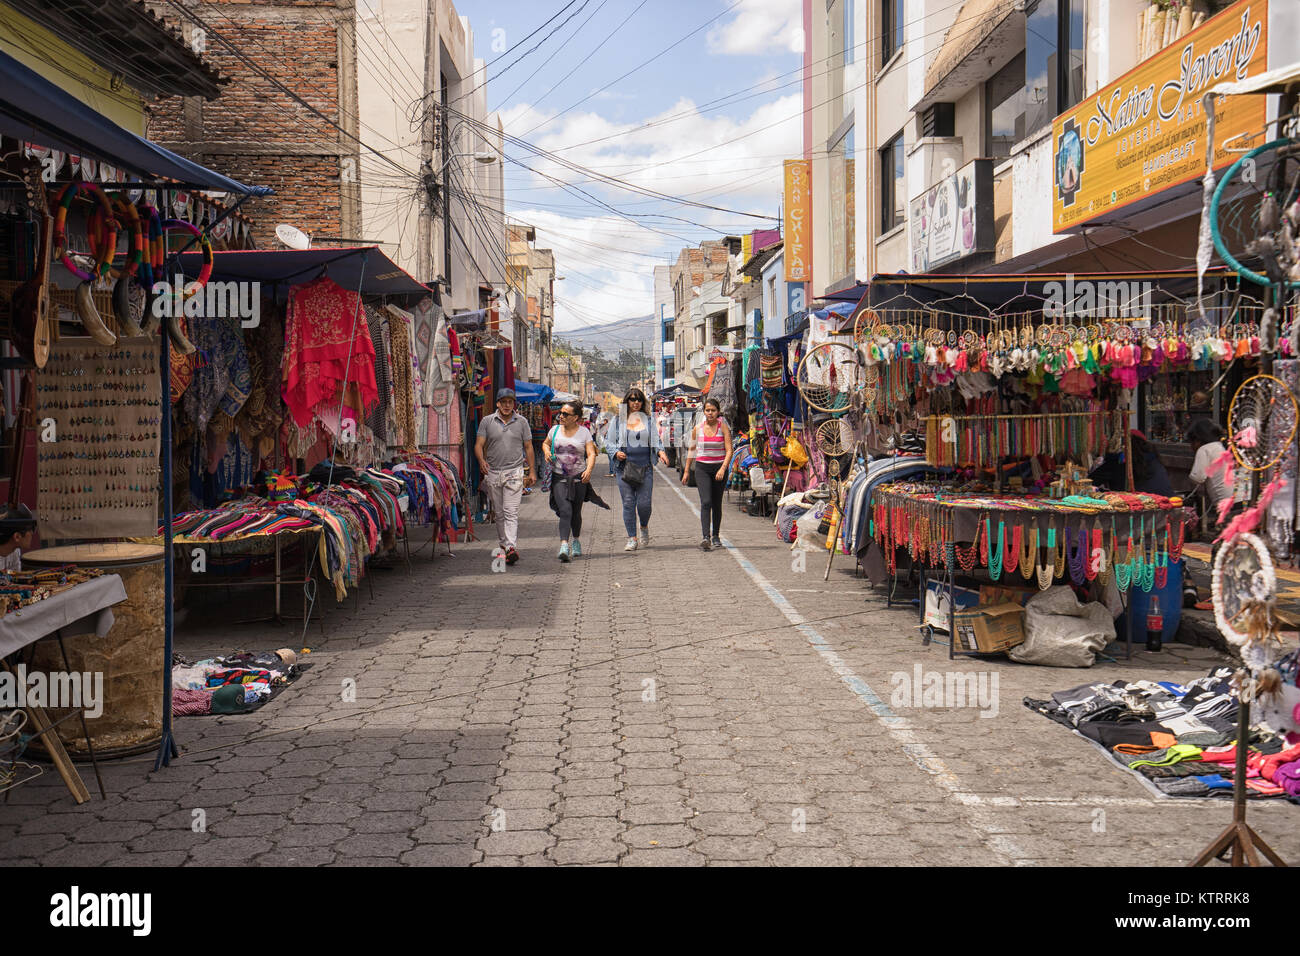 Otavalo, Ecuador-December 23, 2017: vendor stands set up on the street of the indigenous town on the traditional - Stock Image